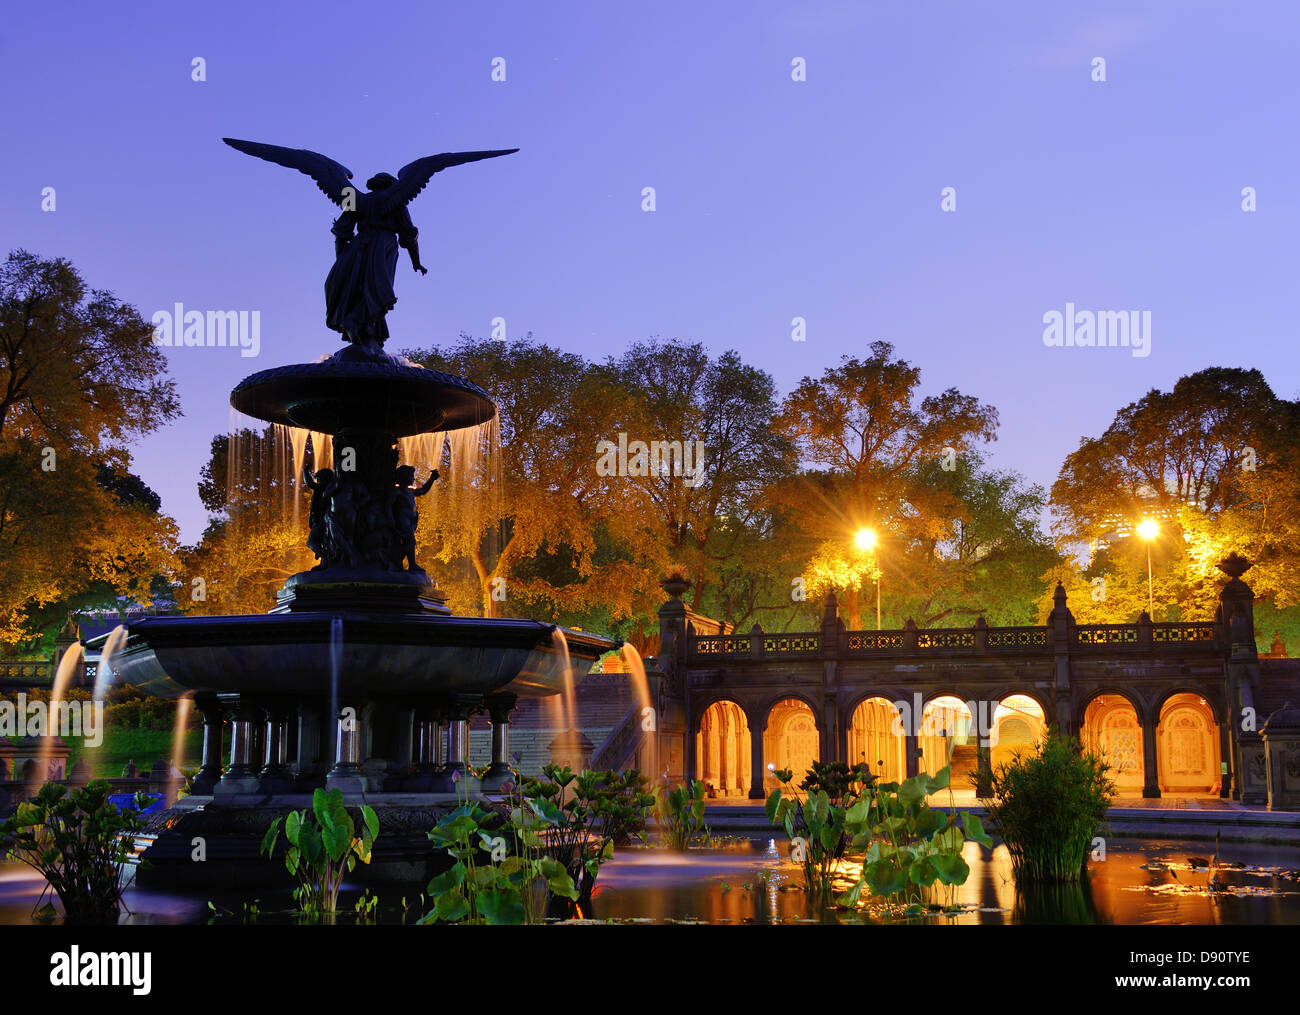 Bethesda Terrasse und Brunnen in New York City. Stockbild